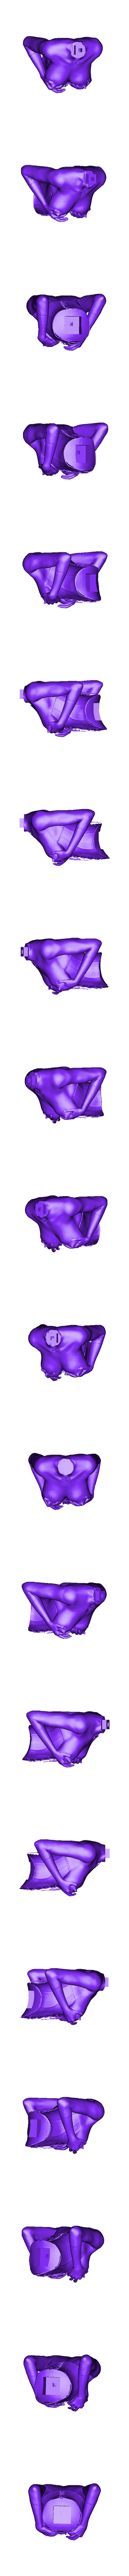 upper_body.obj Download free OBJ file DER GROPPEN FRURER • 3D printing template, boryelwoc